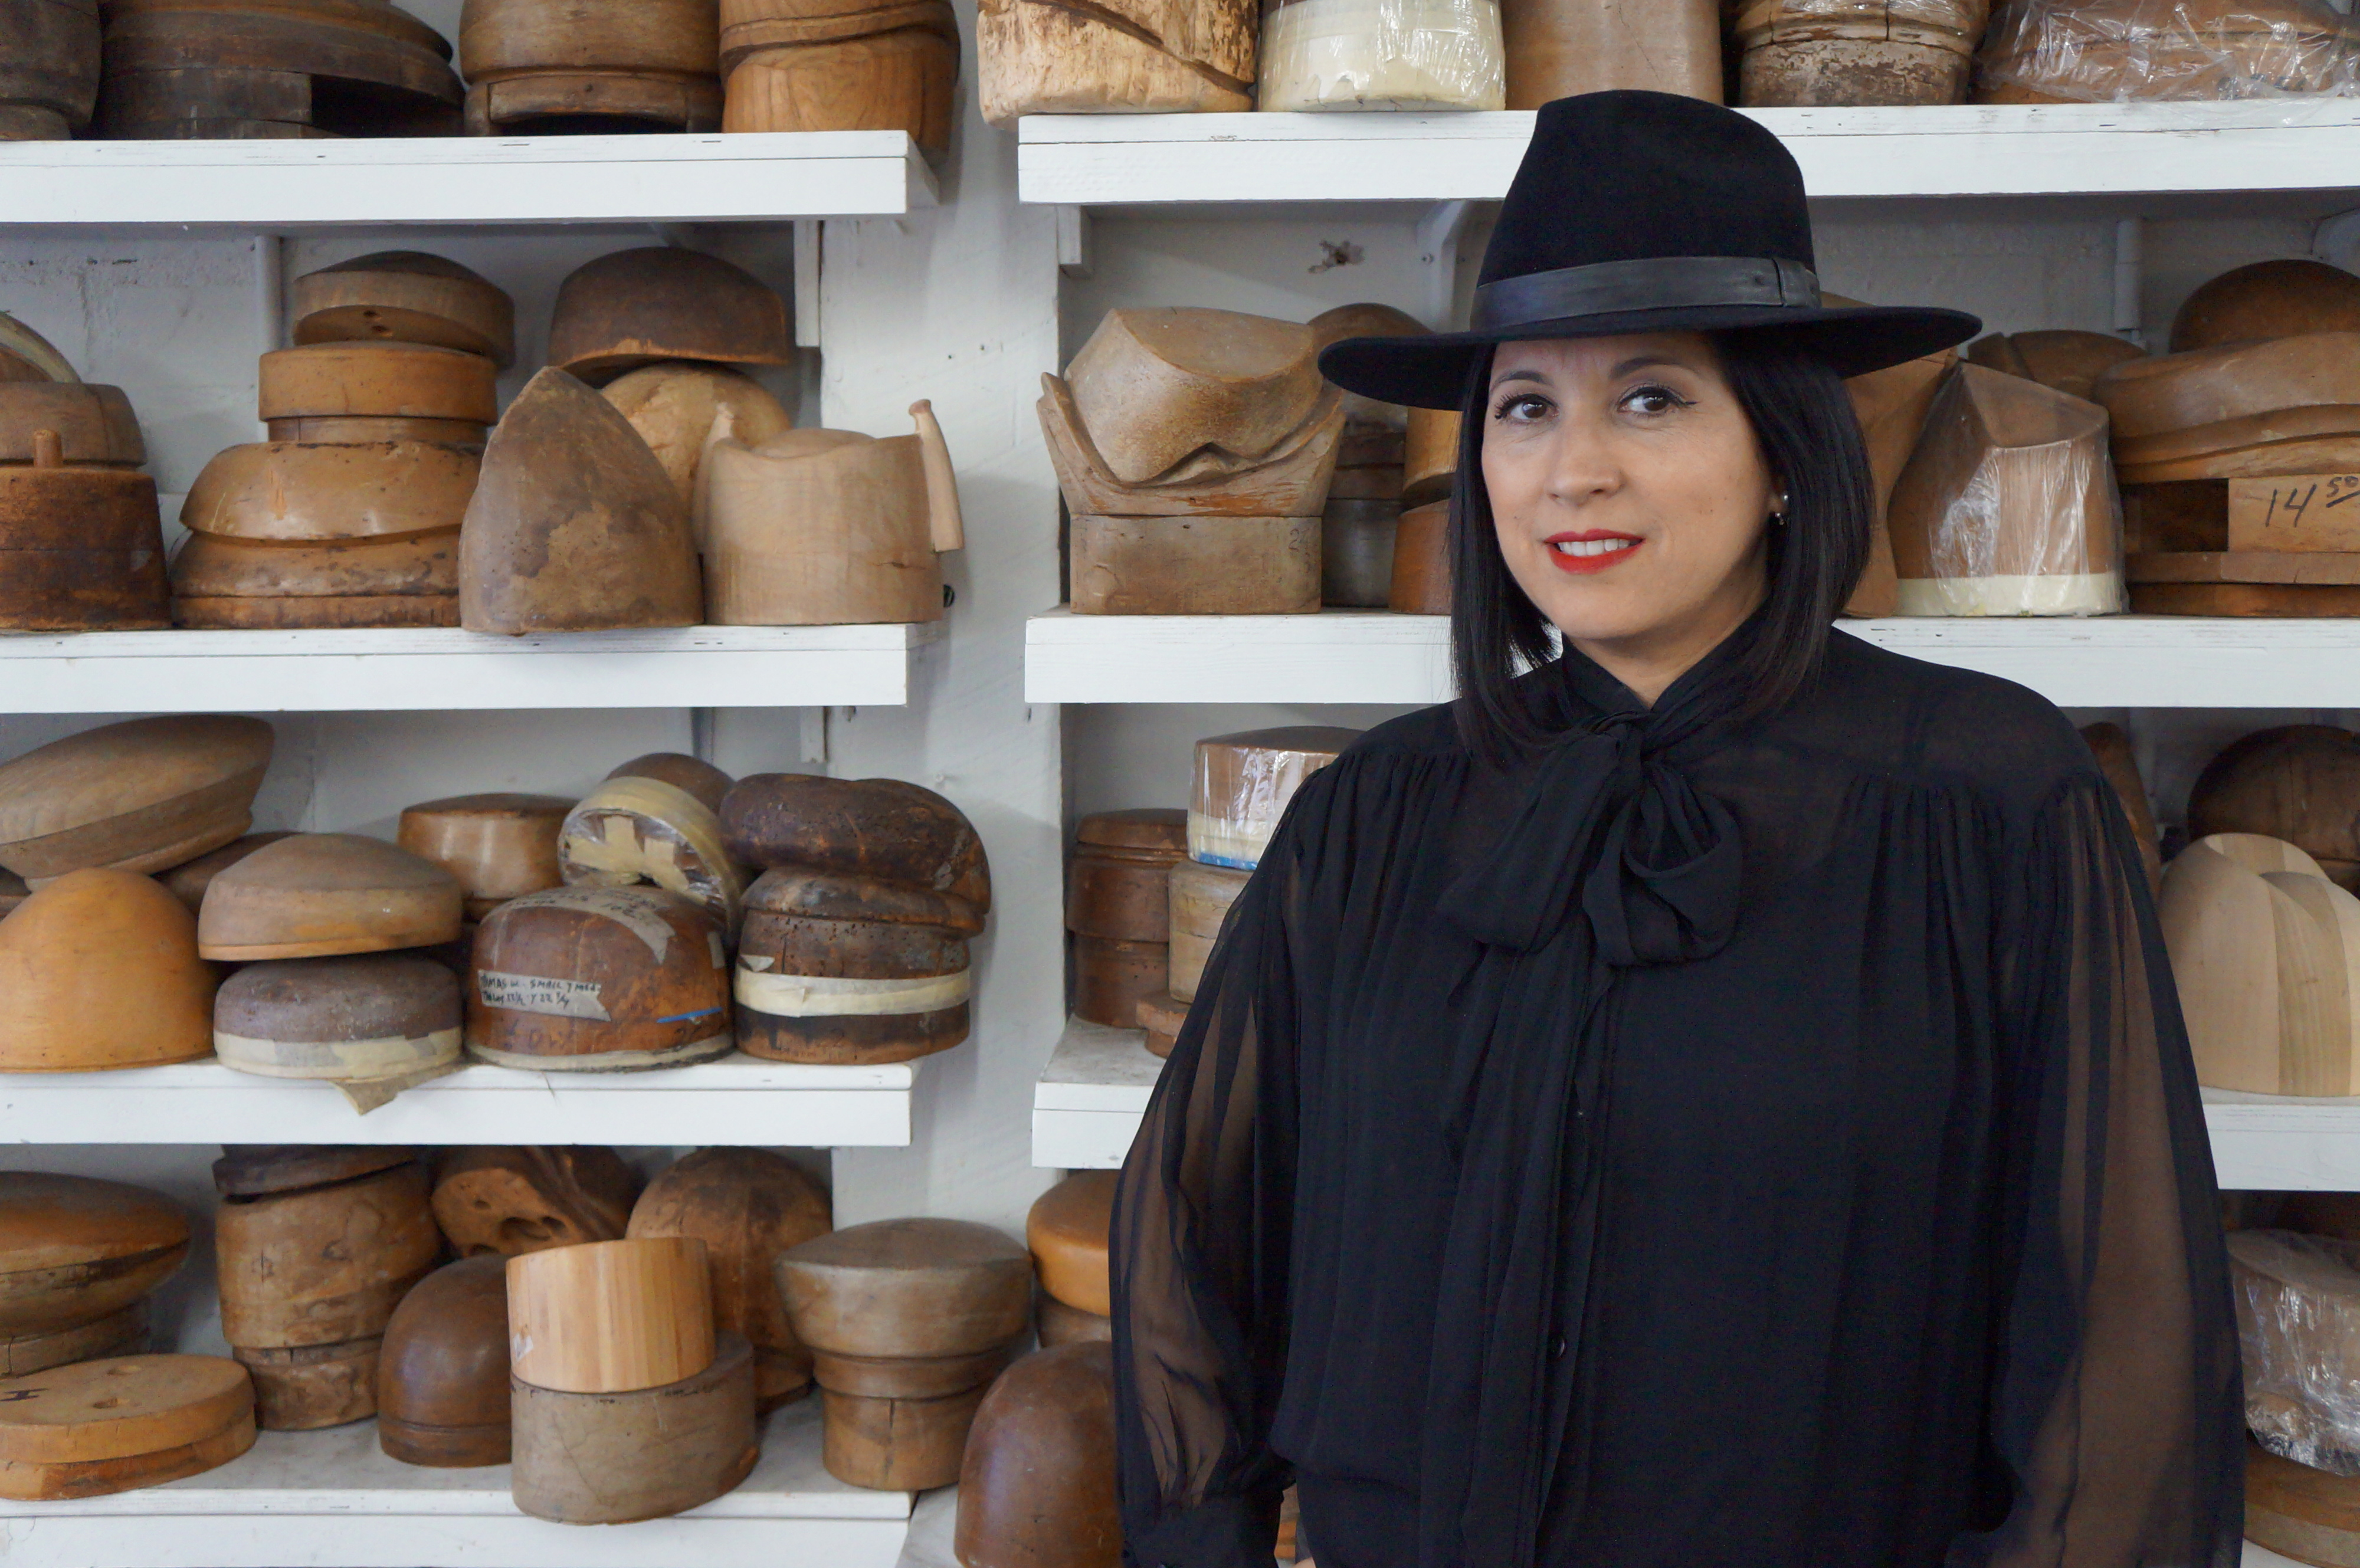 Mexican Hat Maker Designs Iconic Hats for Celebrities  0c23e4a7915